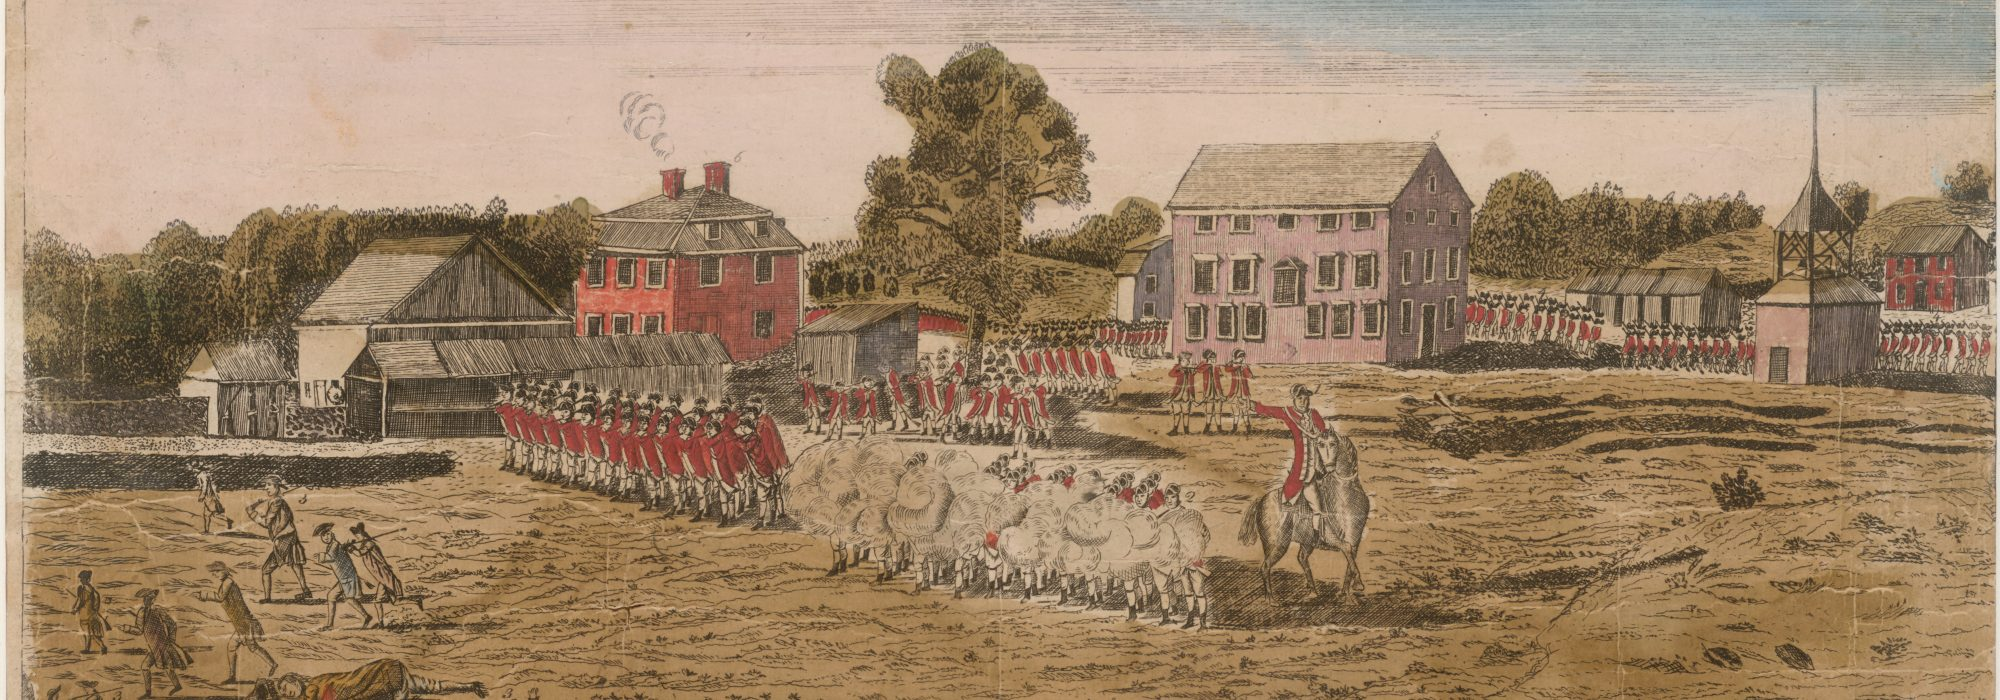 The light infantry and grenadier companies of the 10th Foot took part in the battles of Lexington and Concord on April 19, 1775. This engraving, printed soon after the battle in 1775, shows the opening engagement on Lexington green. Courtesy Anne S.K. Brown Military Collection, Brown University.